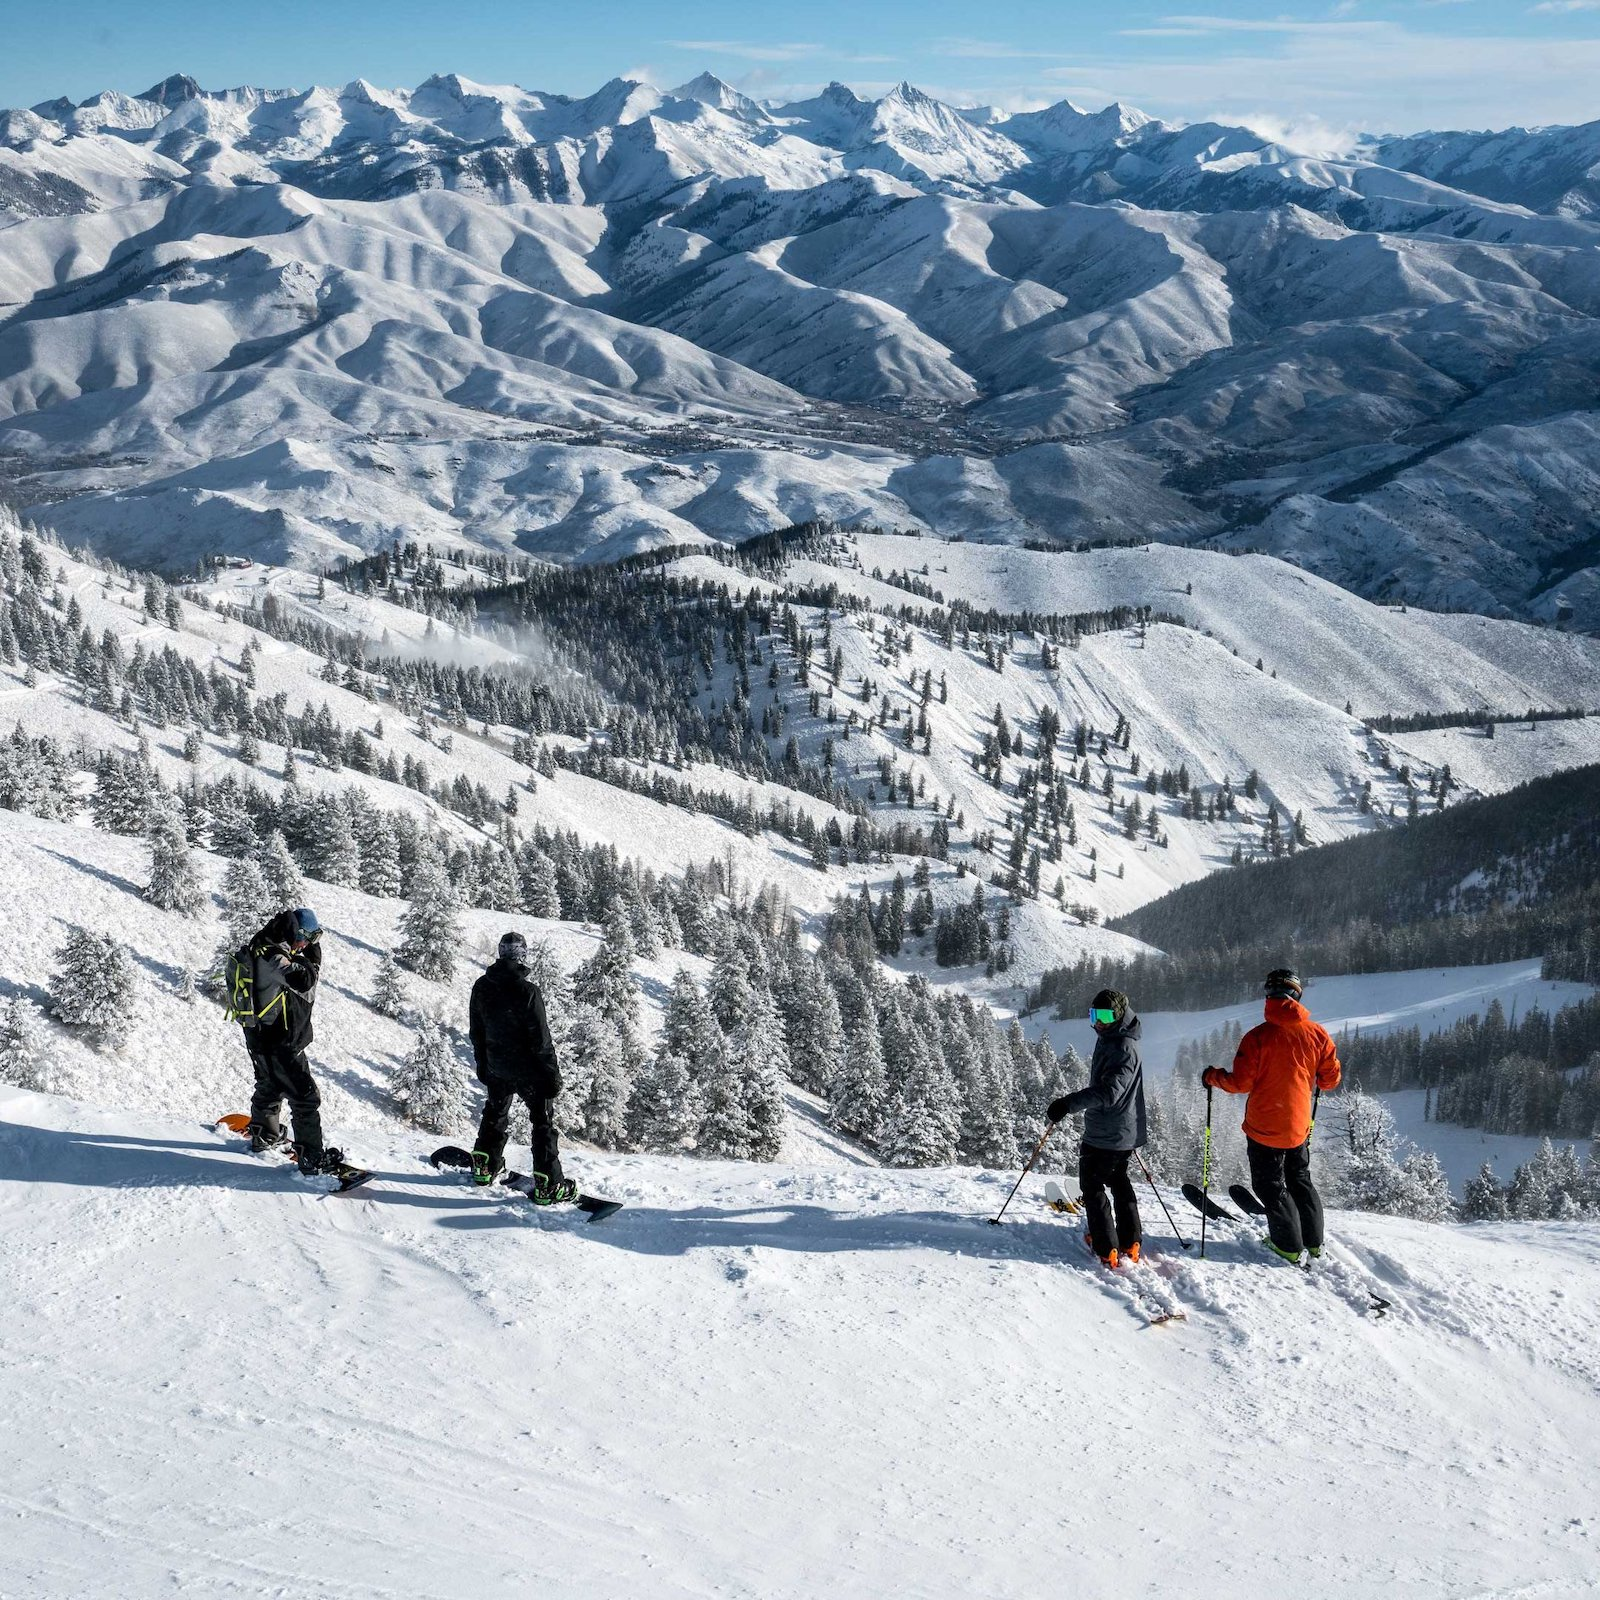 Image of snowboarders and skiers looking out at mountains at Sun Valley Ski Resort in Idaho